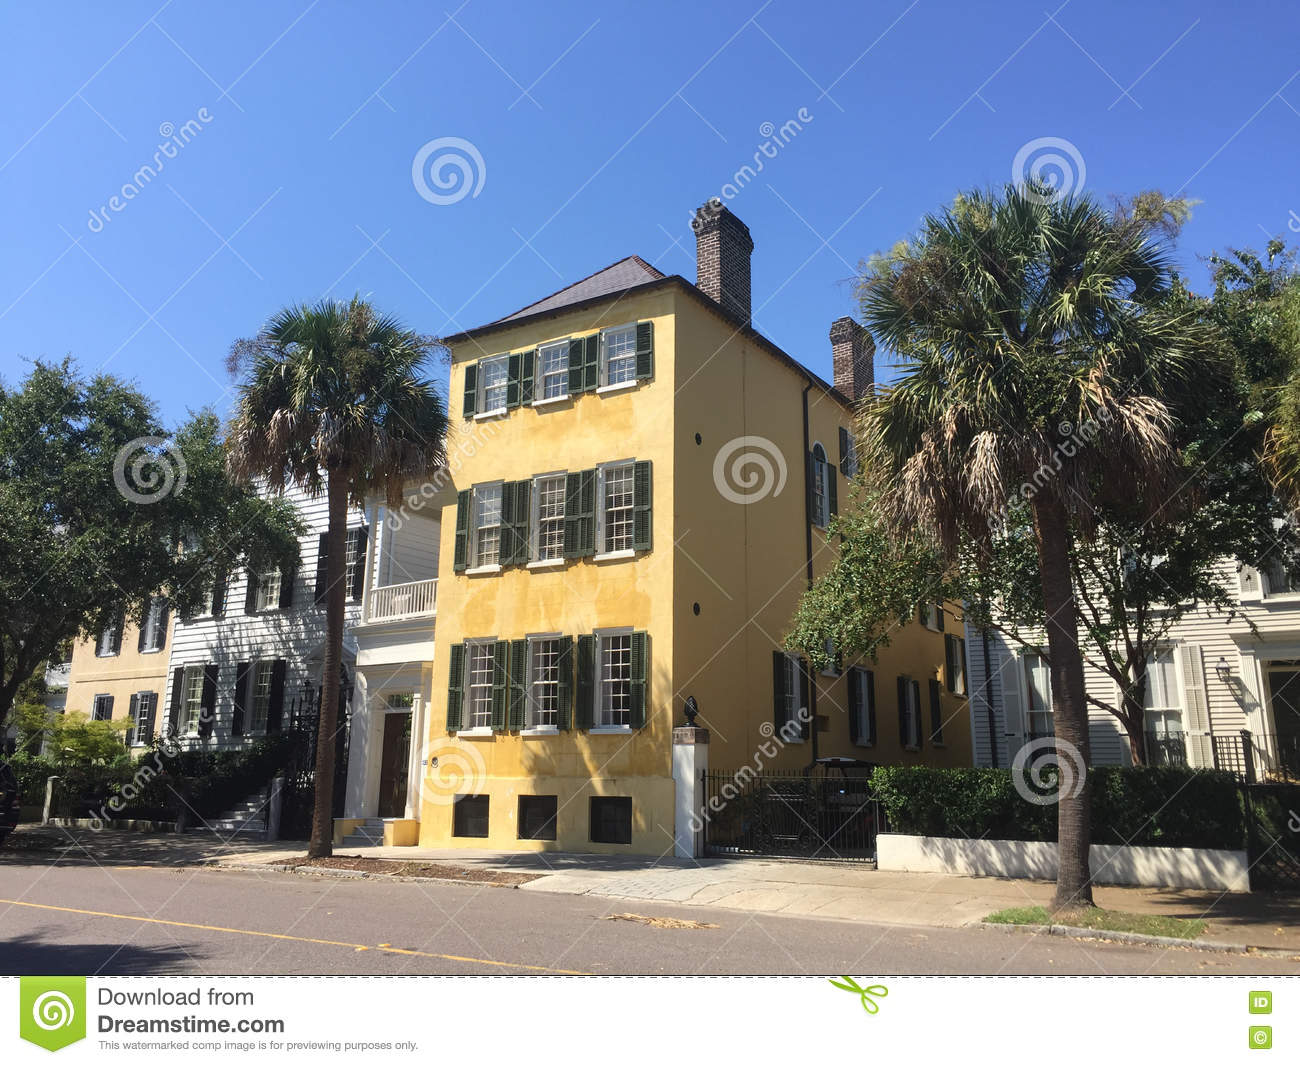 Southern style homes on tradd st charleston sc for Home goods charleston sc